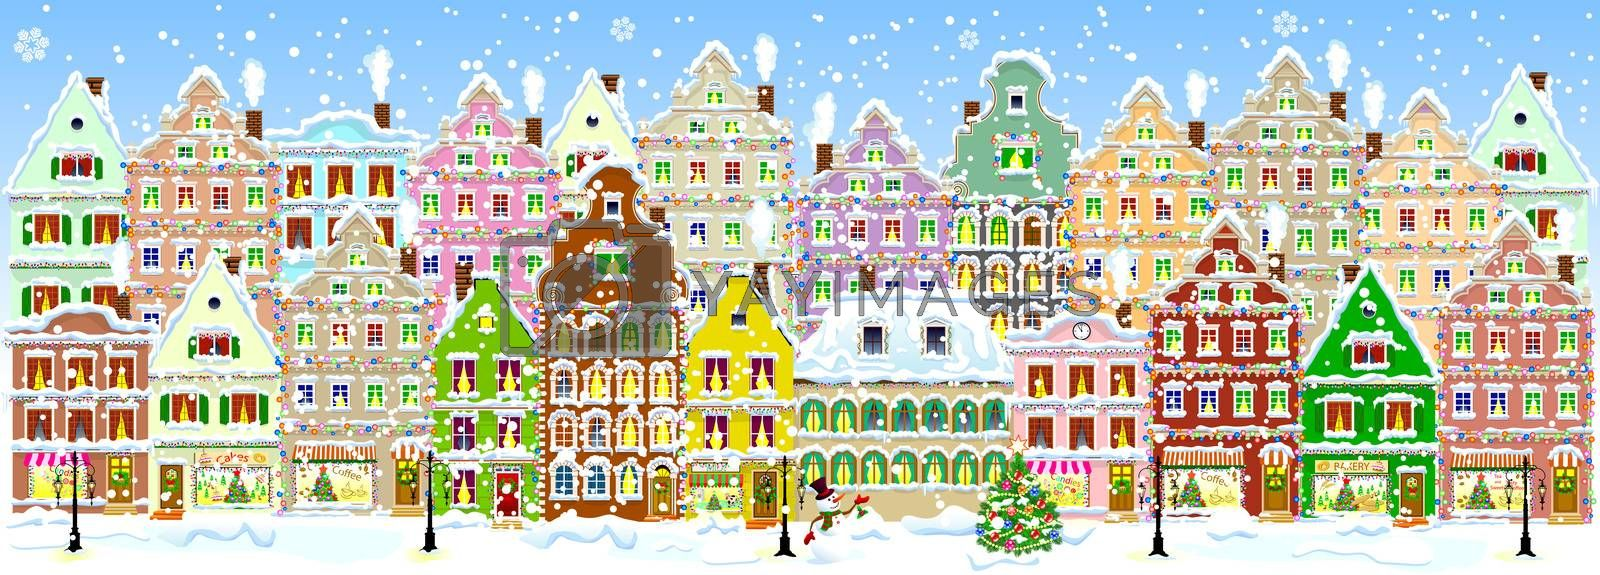 City in winter, banner by liolle